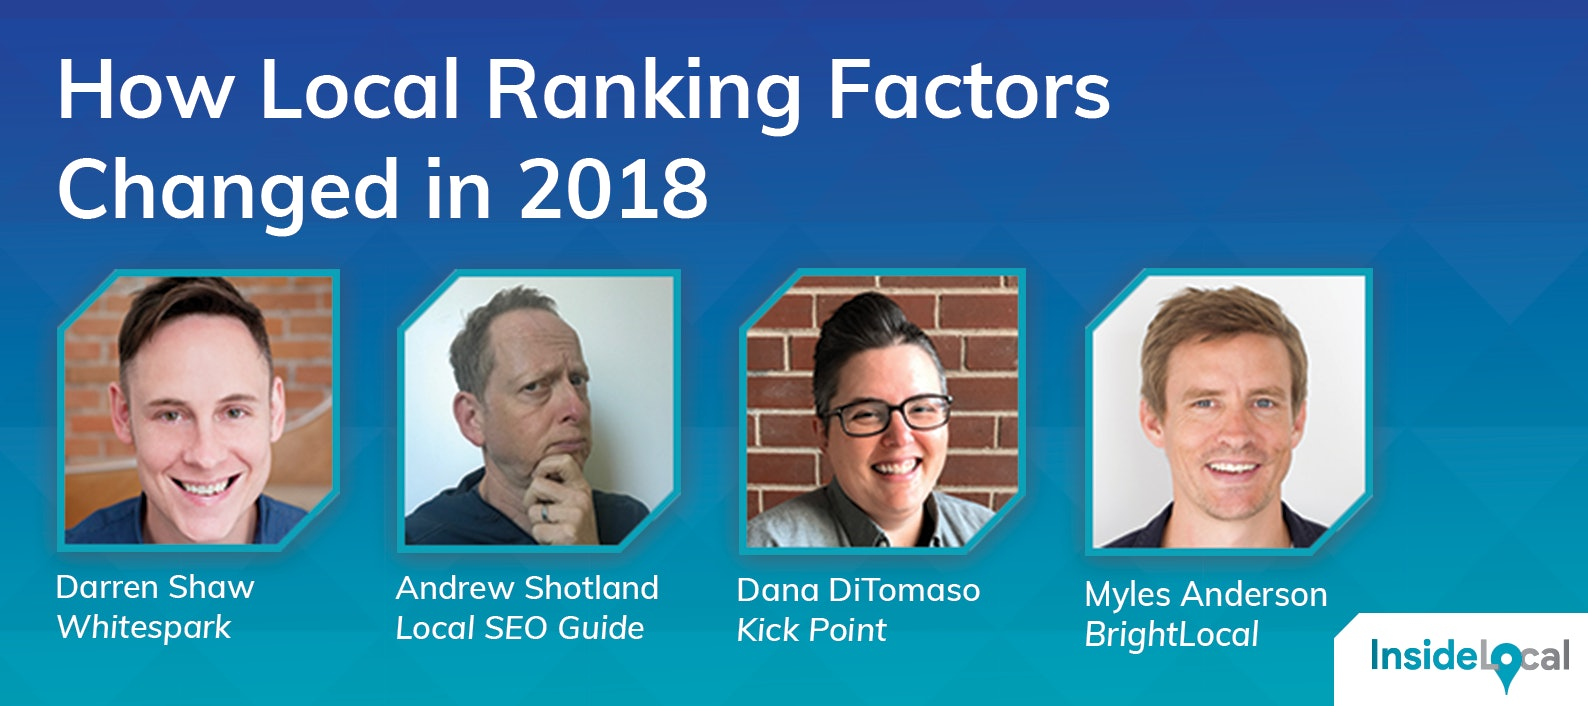 How Local Ranking Factors Changed in 2018